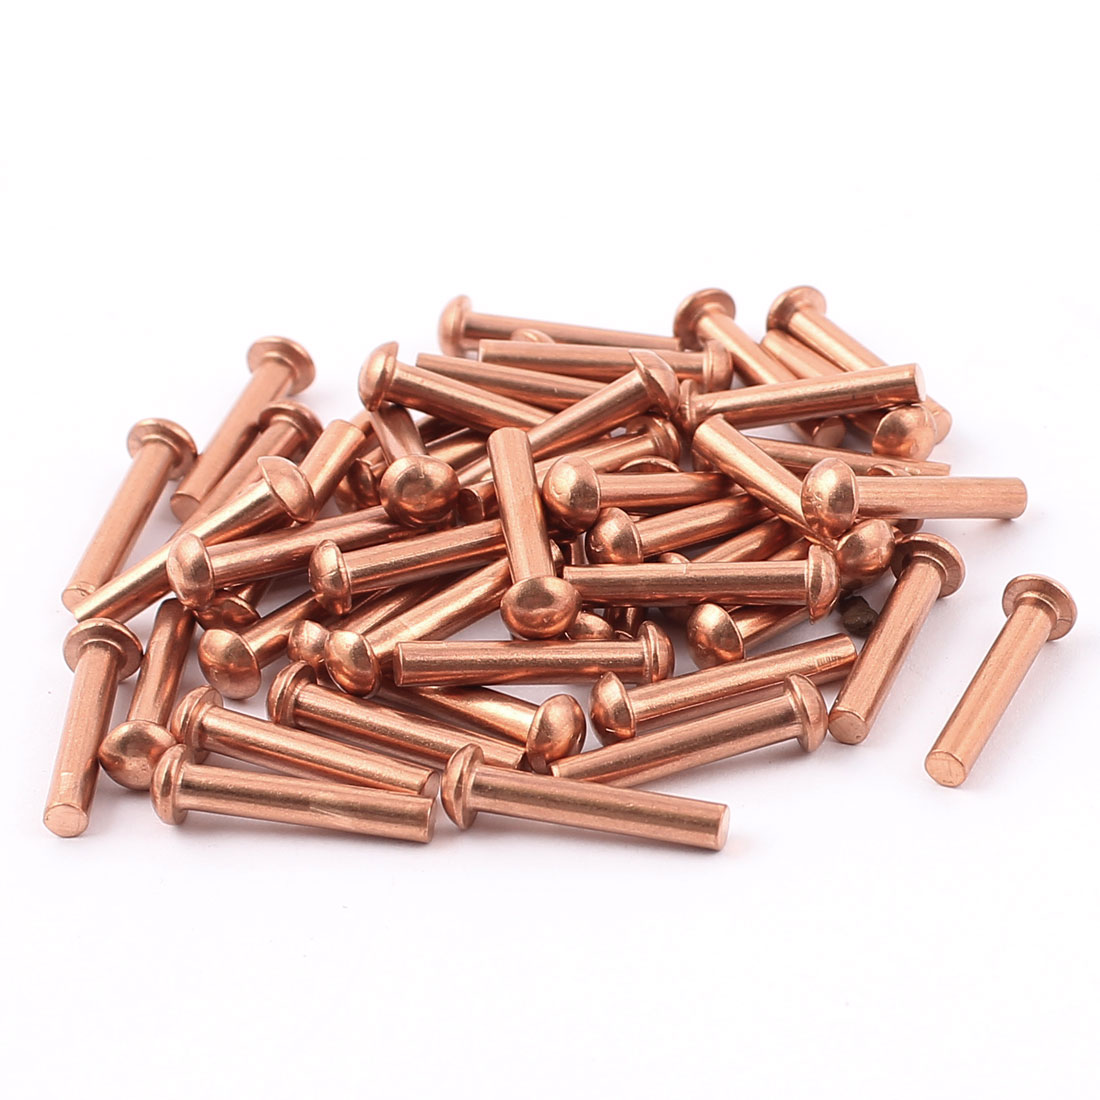 "50 Pcs 1/8"" x 5/8"" Round Head Copper Solid Rivets Fasteners"